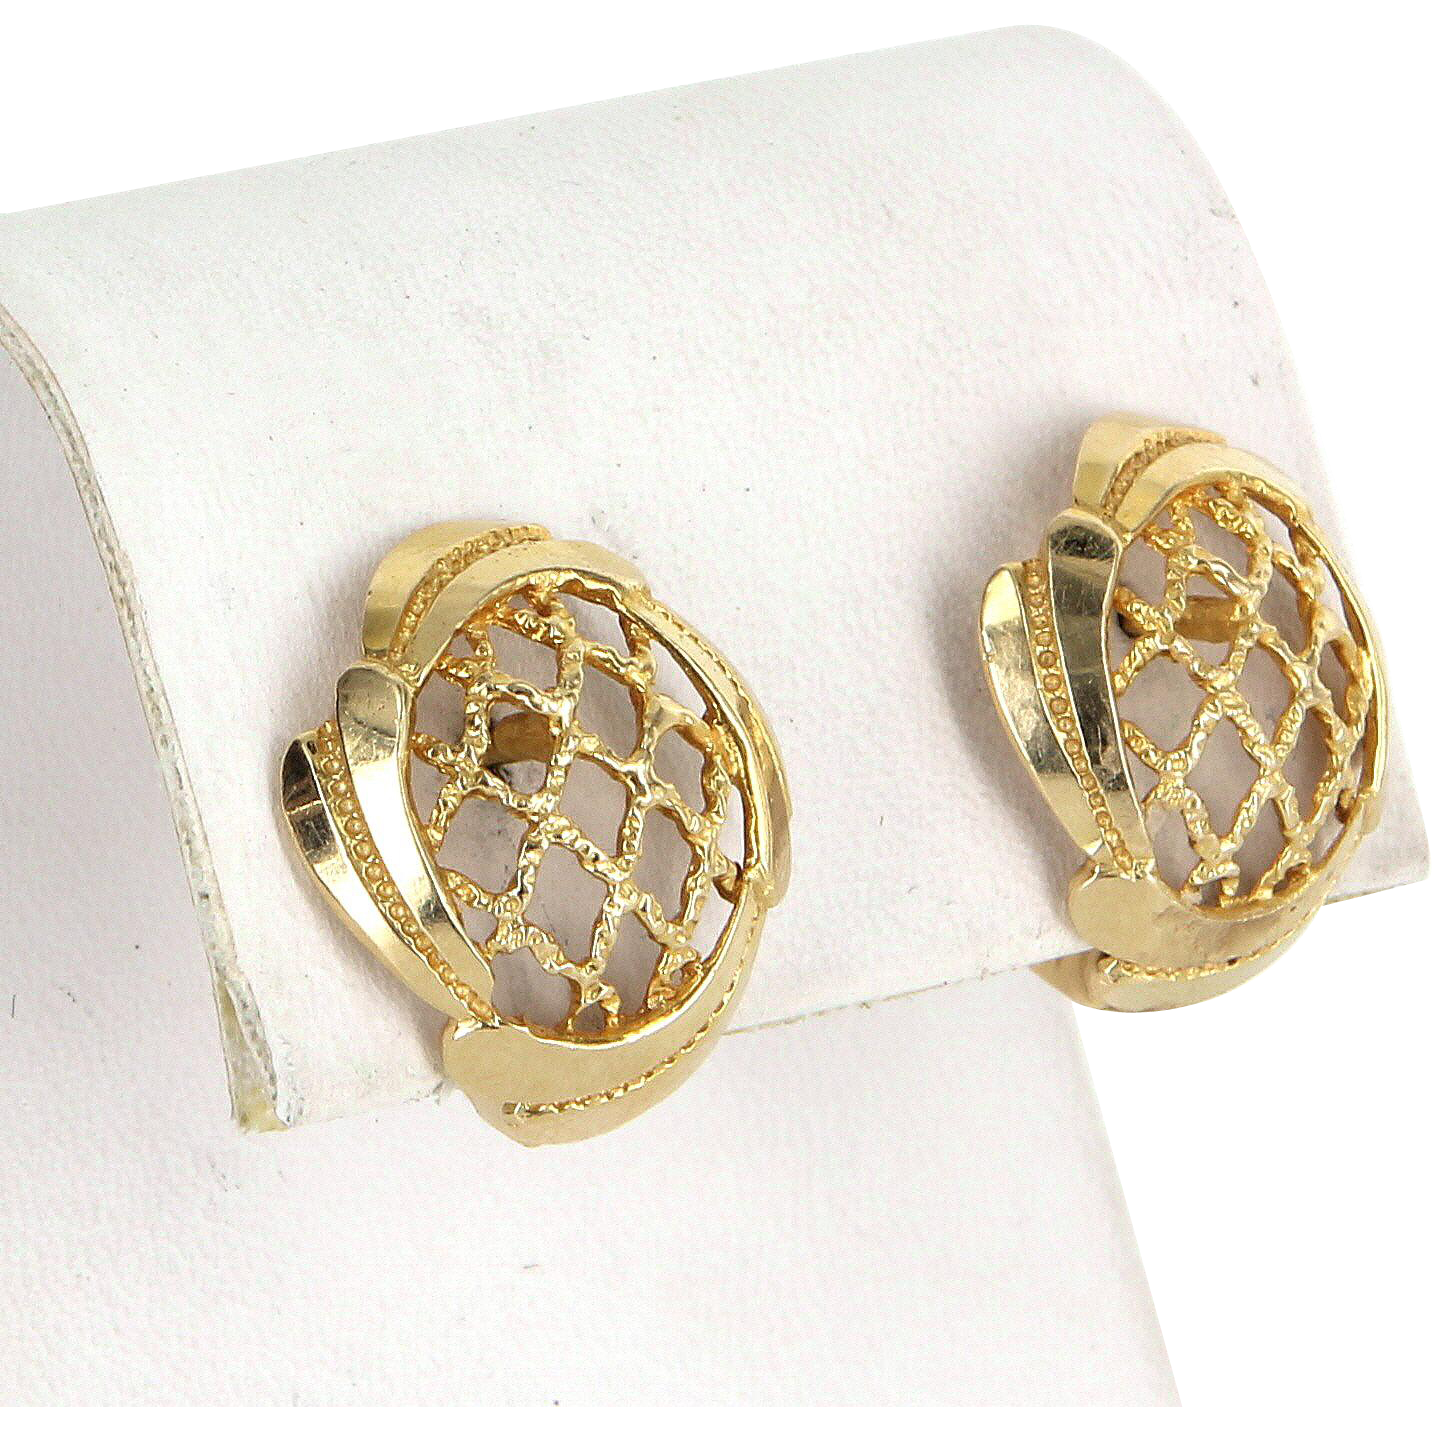 Basket Weave Vintage Earrings 14 Karat Yellow Gold Estate Fine Jewelry Pre Owned